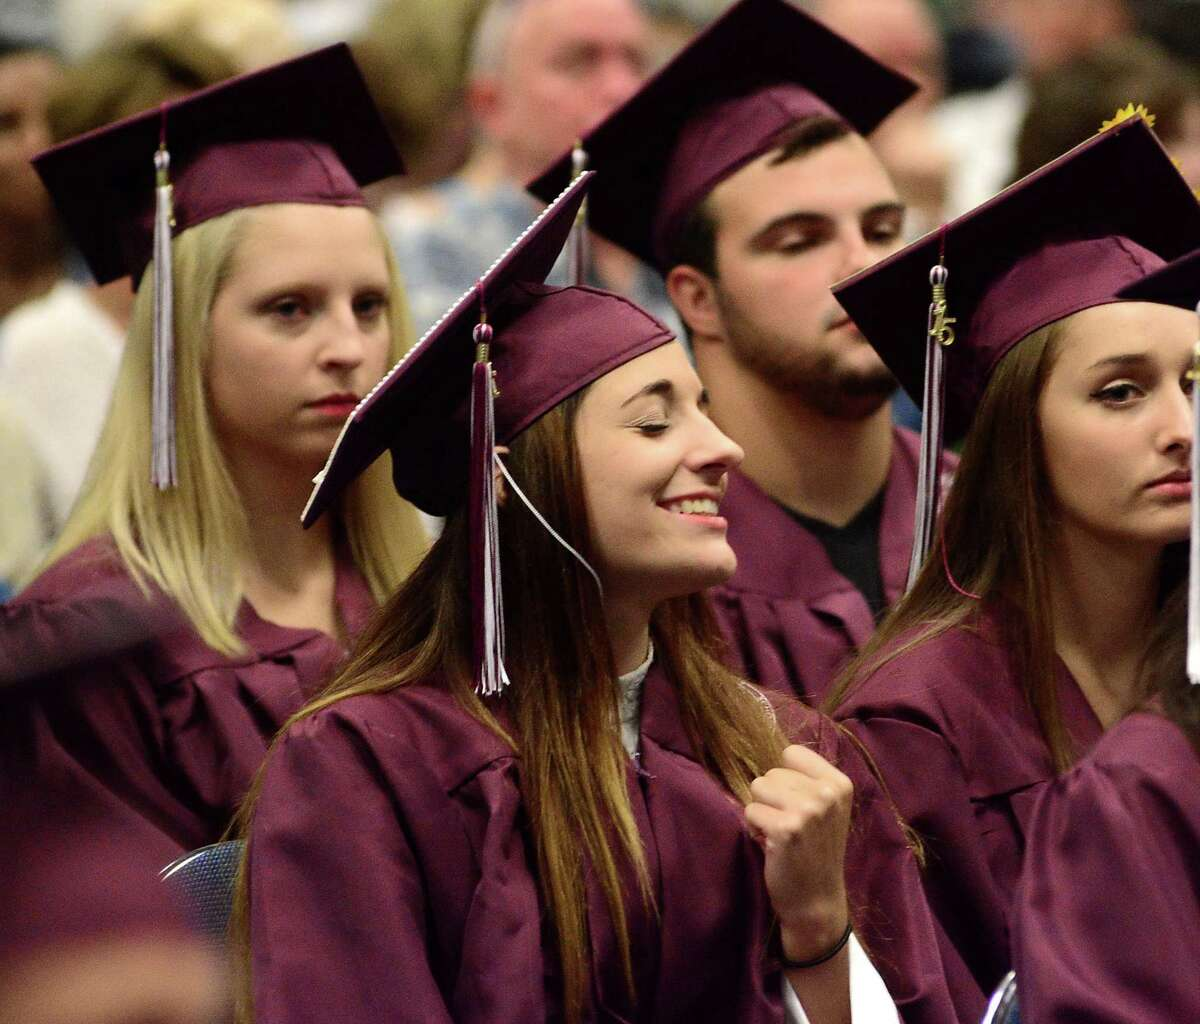 Michelle Veilleux sings along with the choir during Bethel High School Commencement Ceremony that was held at Western Connecticut State University's O'Neill Center on Thursday, June 18, 2015.